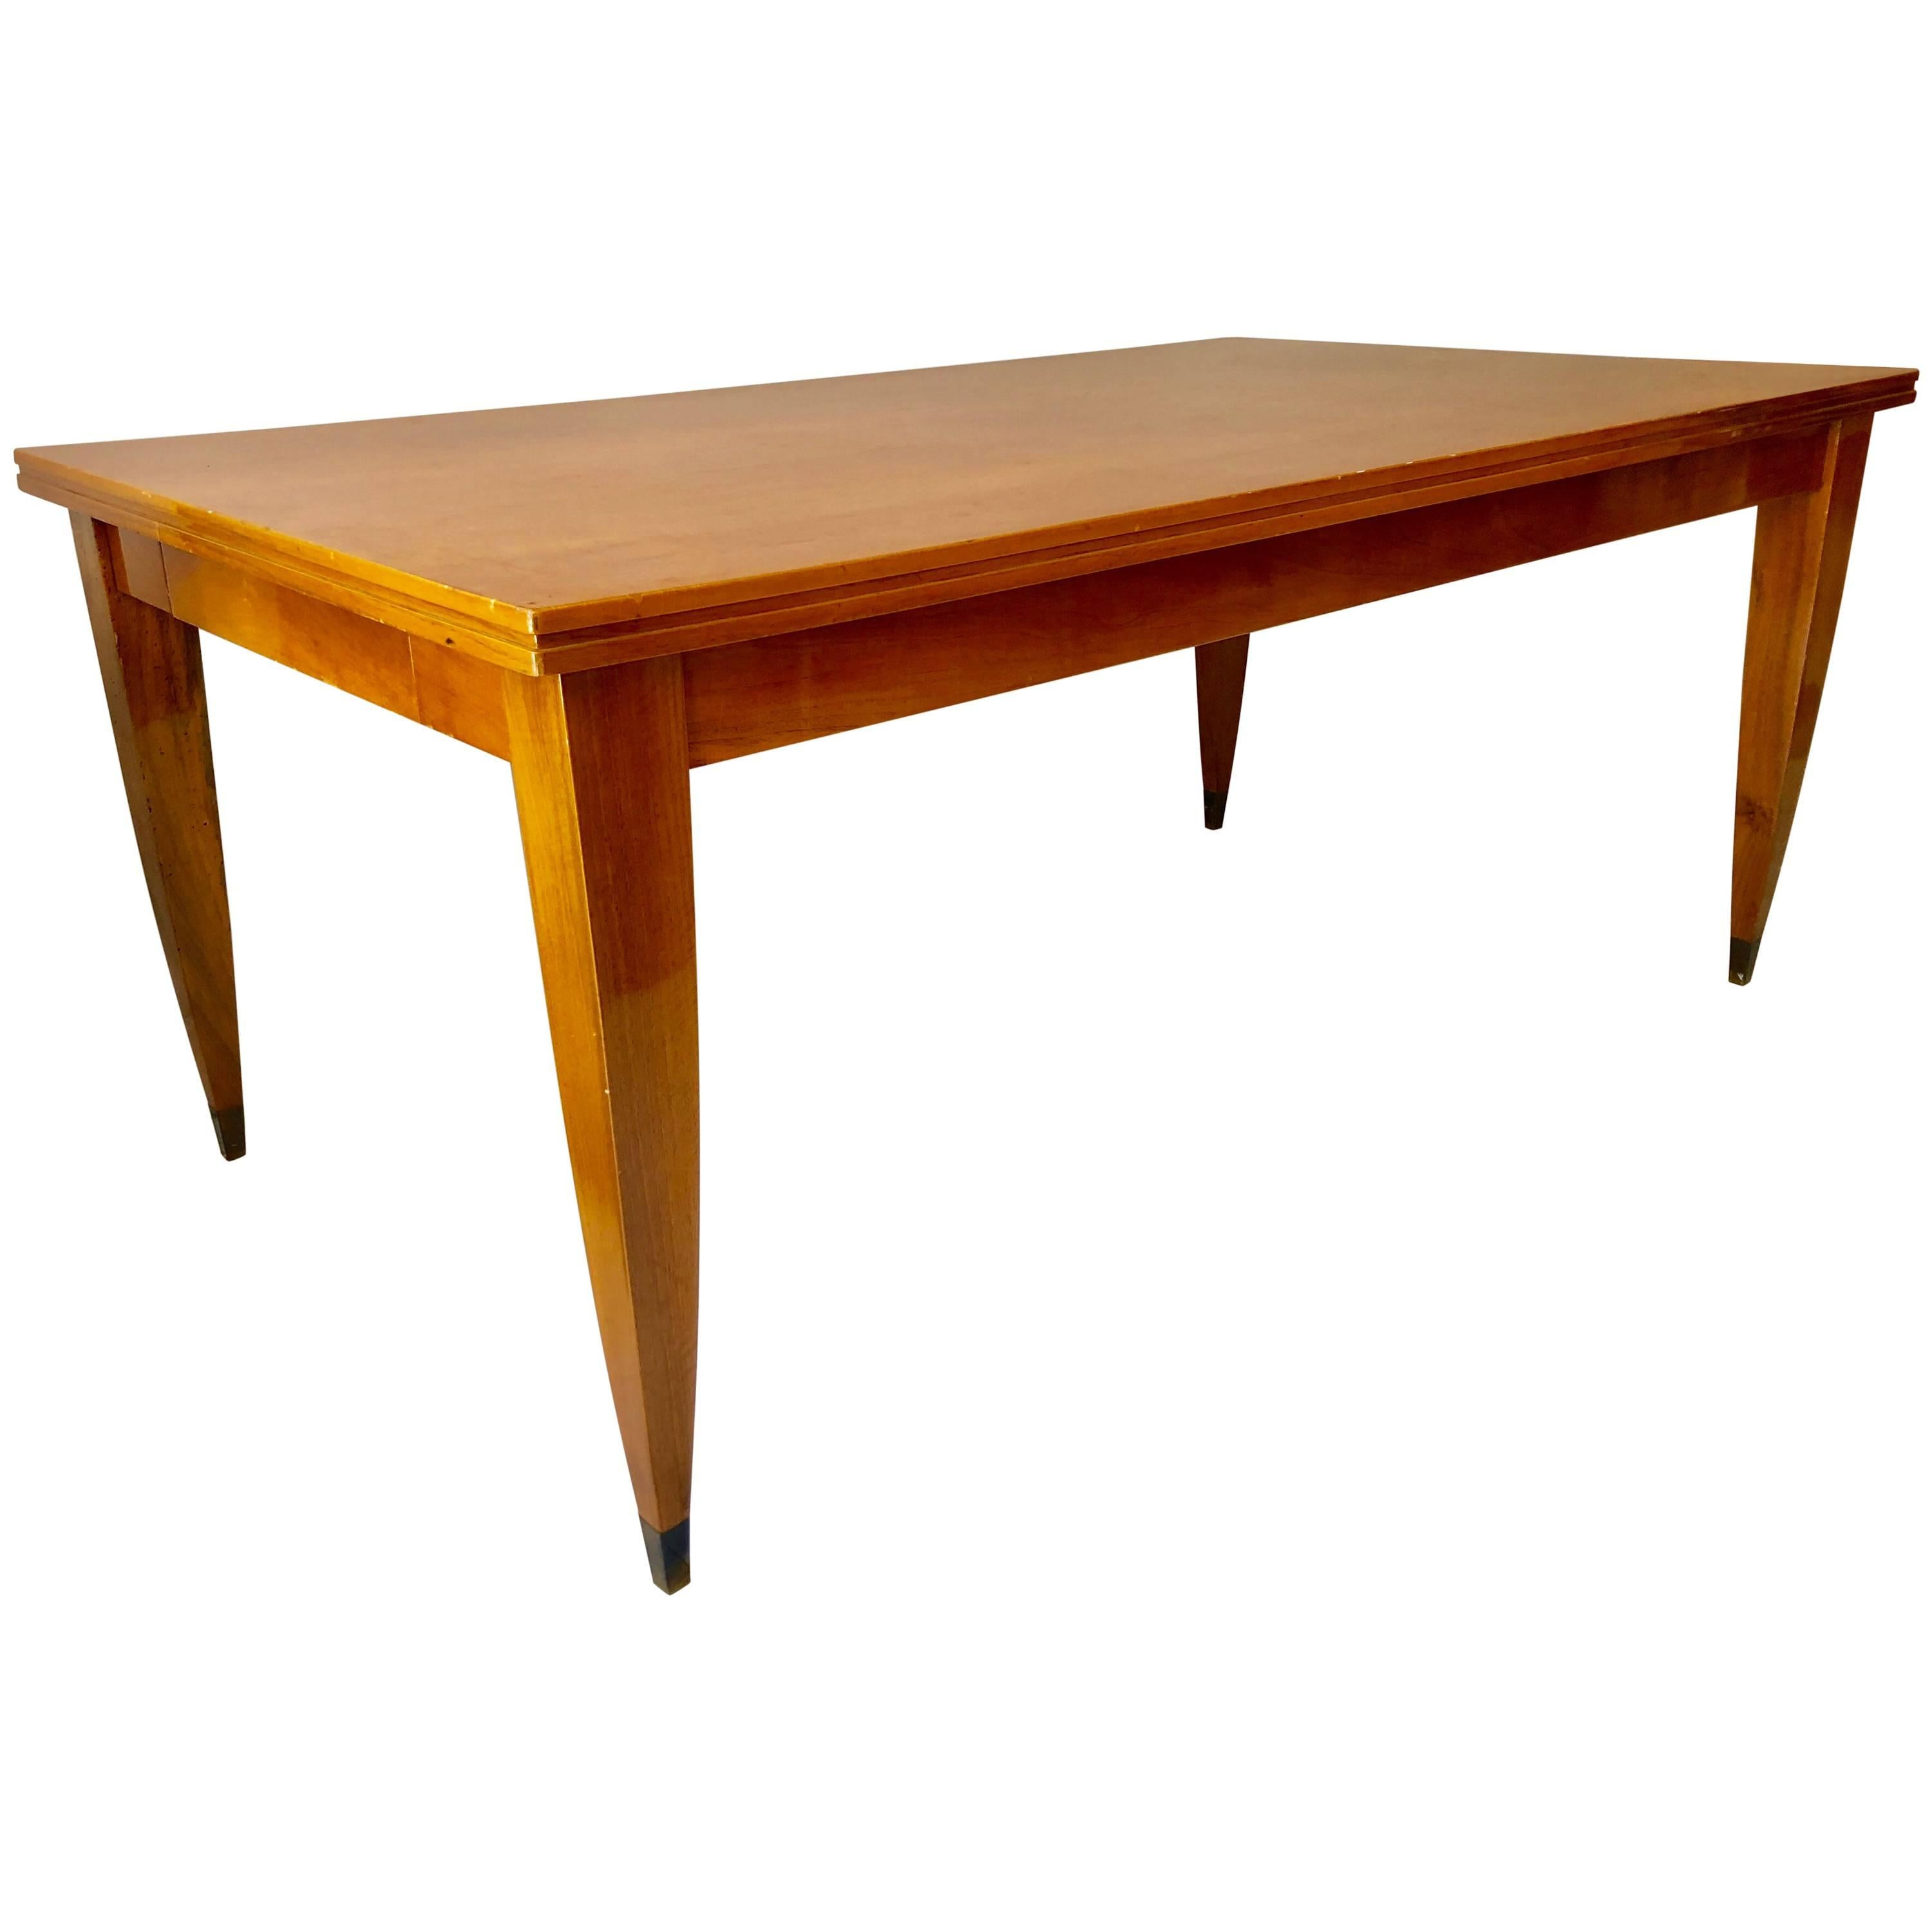 Gio Ponti Style Modern Italian Library or Dining Table